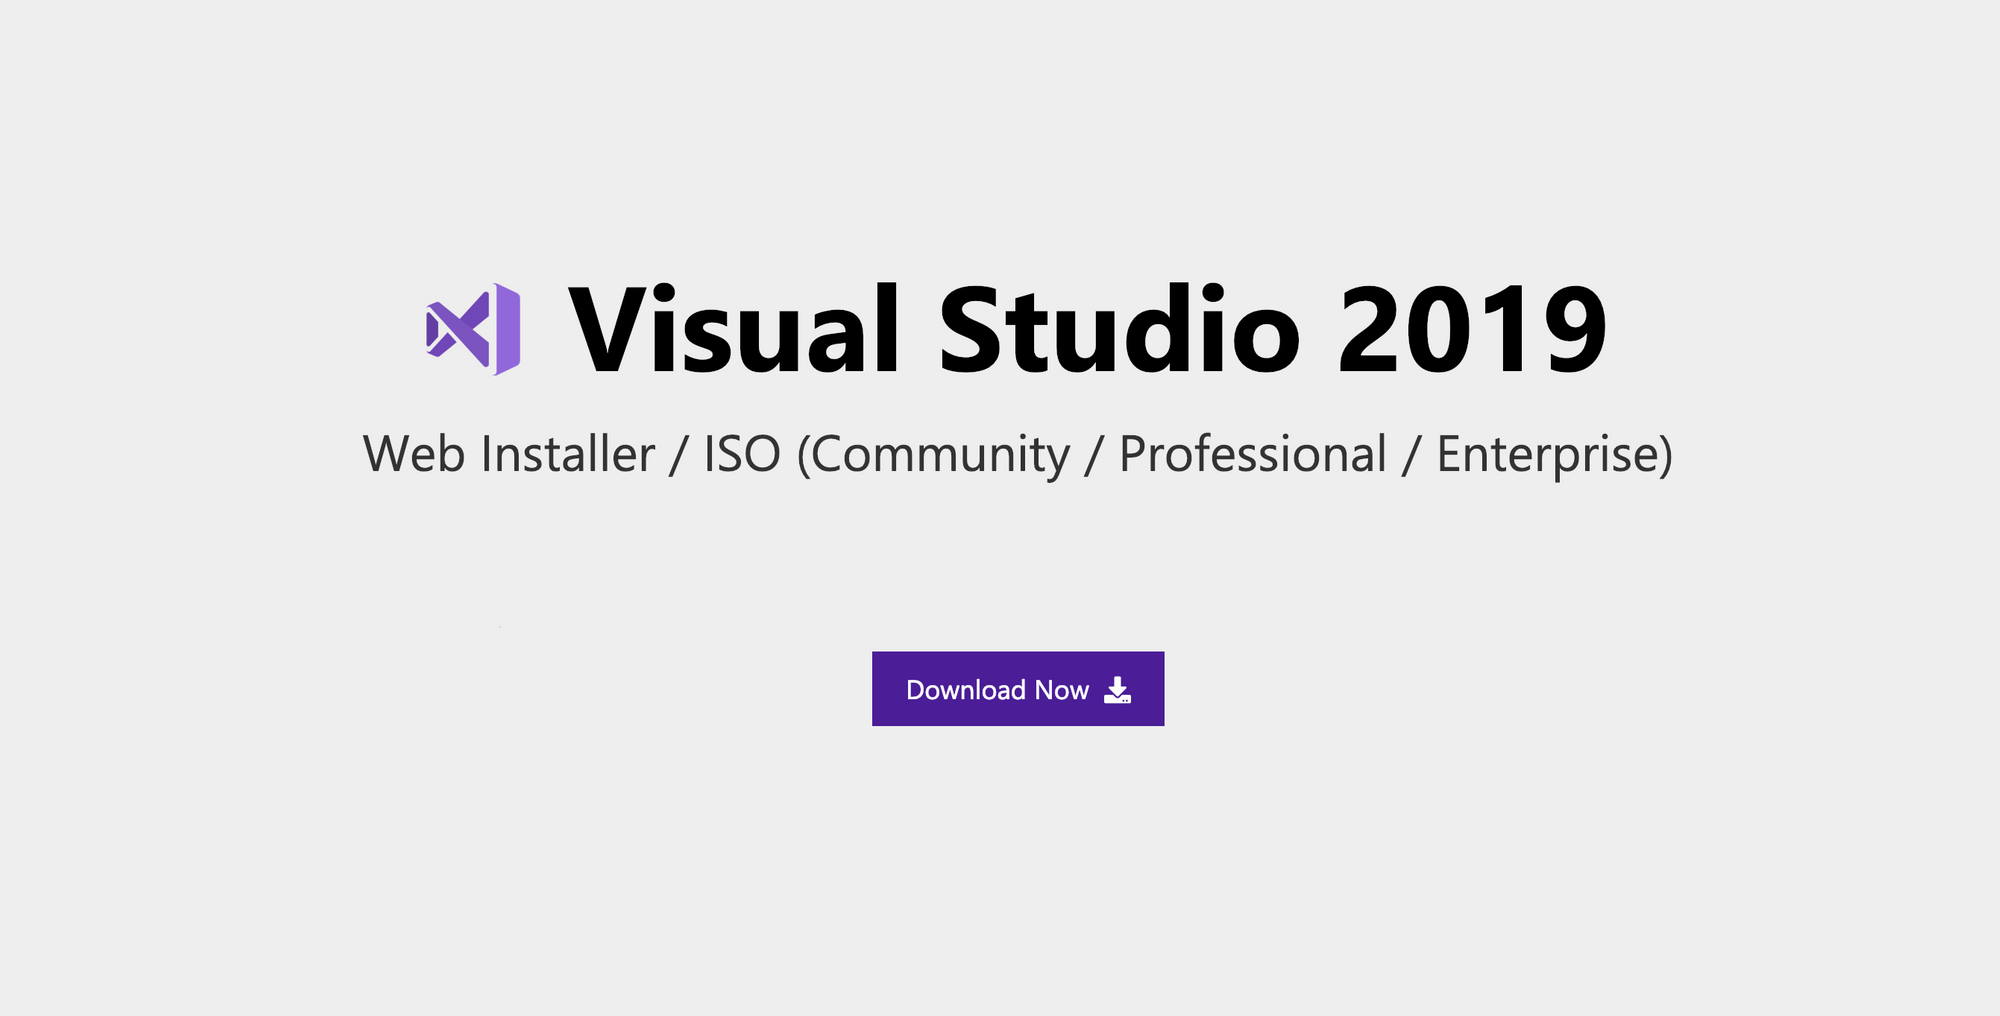 Download Visual Studio 2019 Web Installer / ISO (Community